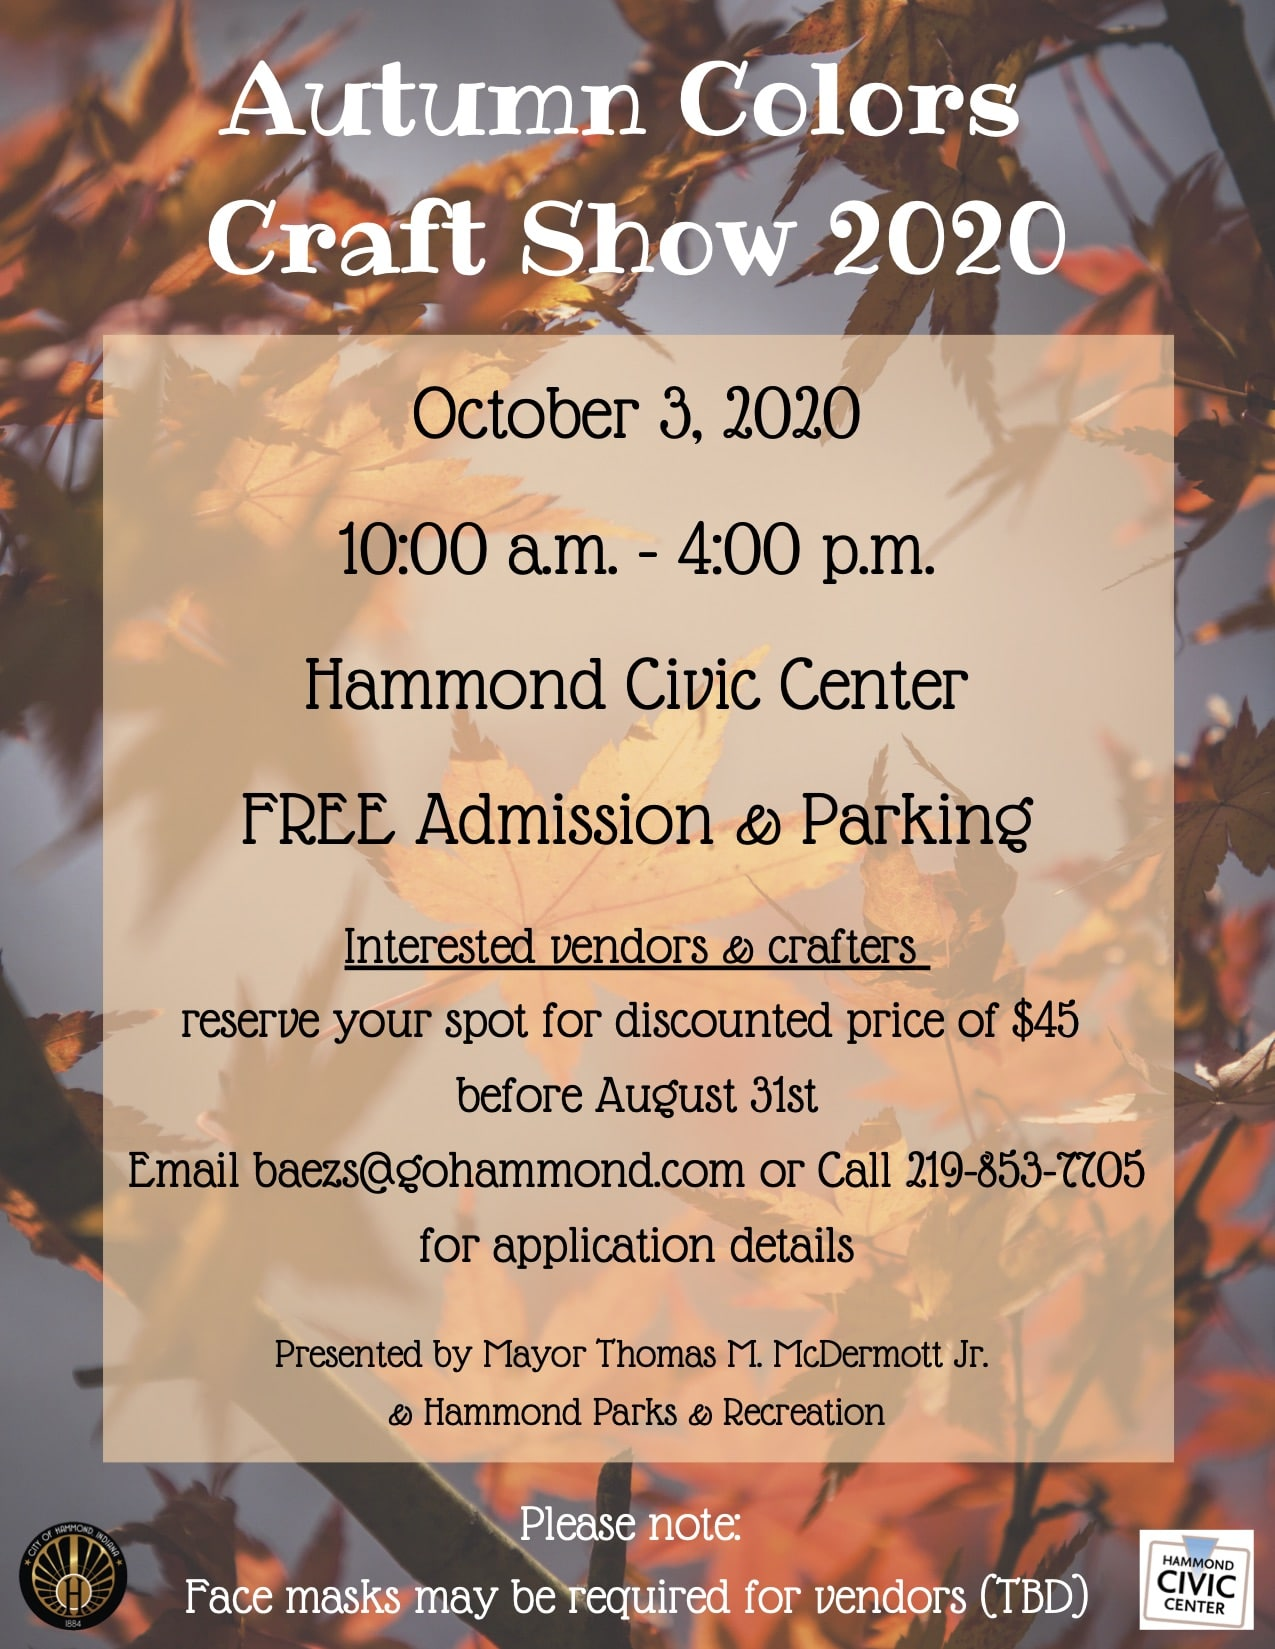 City of Hammond's Autumn Colors Craft show needs vendors